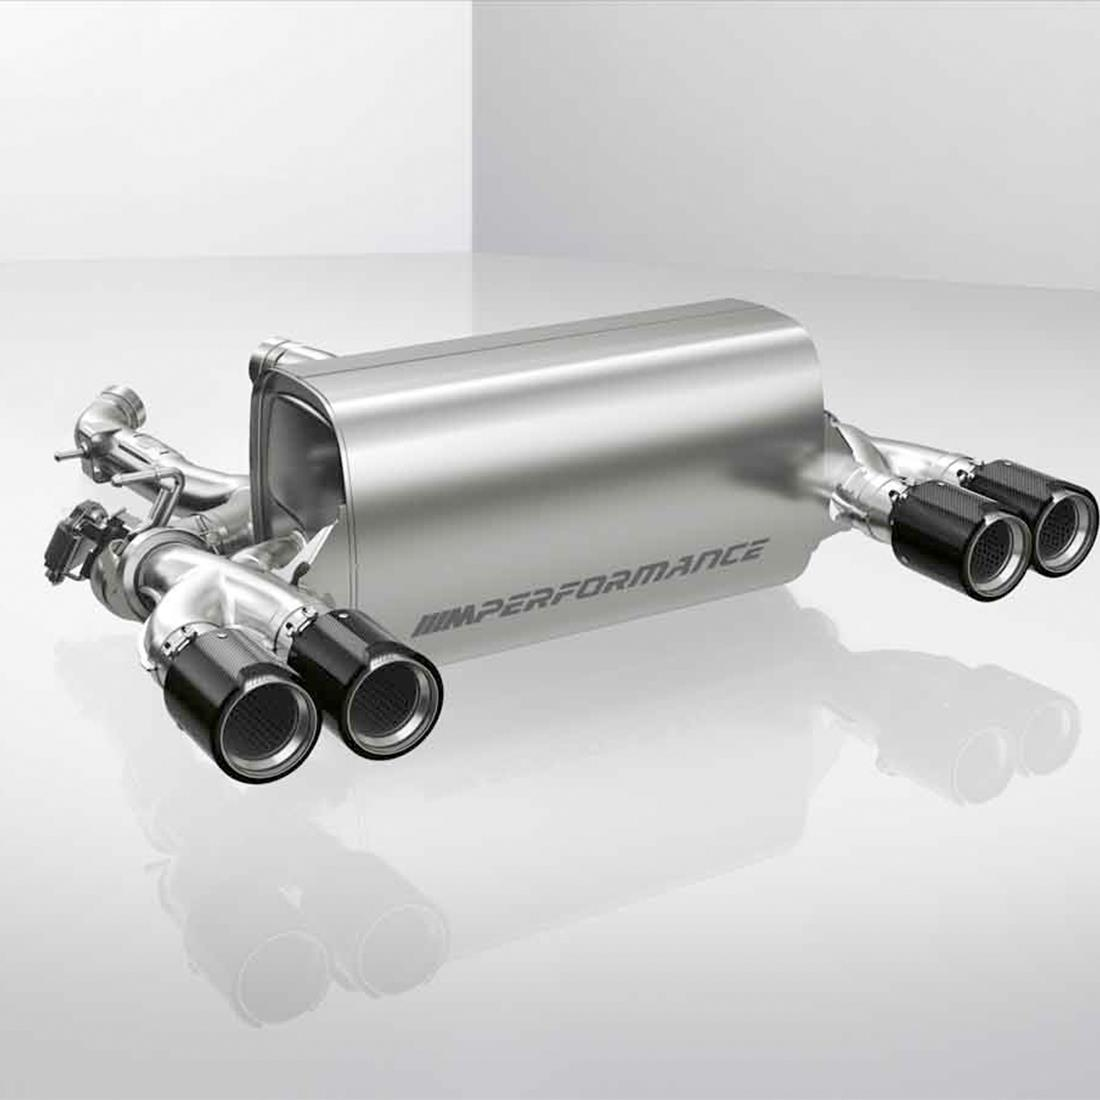 BMW M Performance Exhaust System